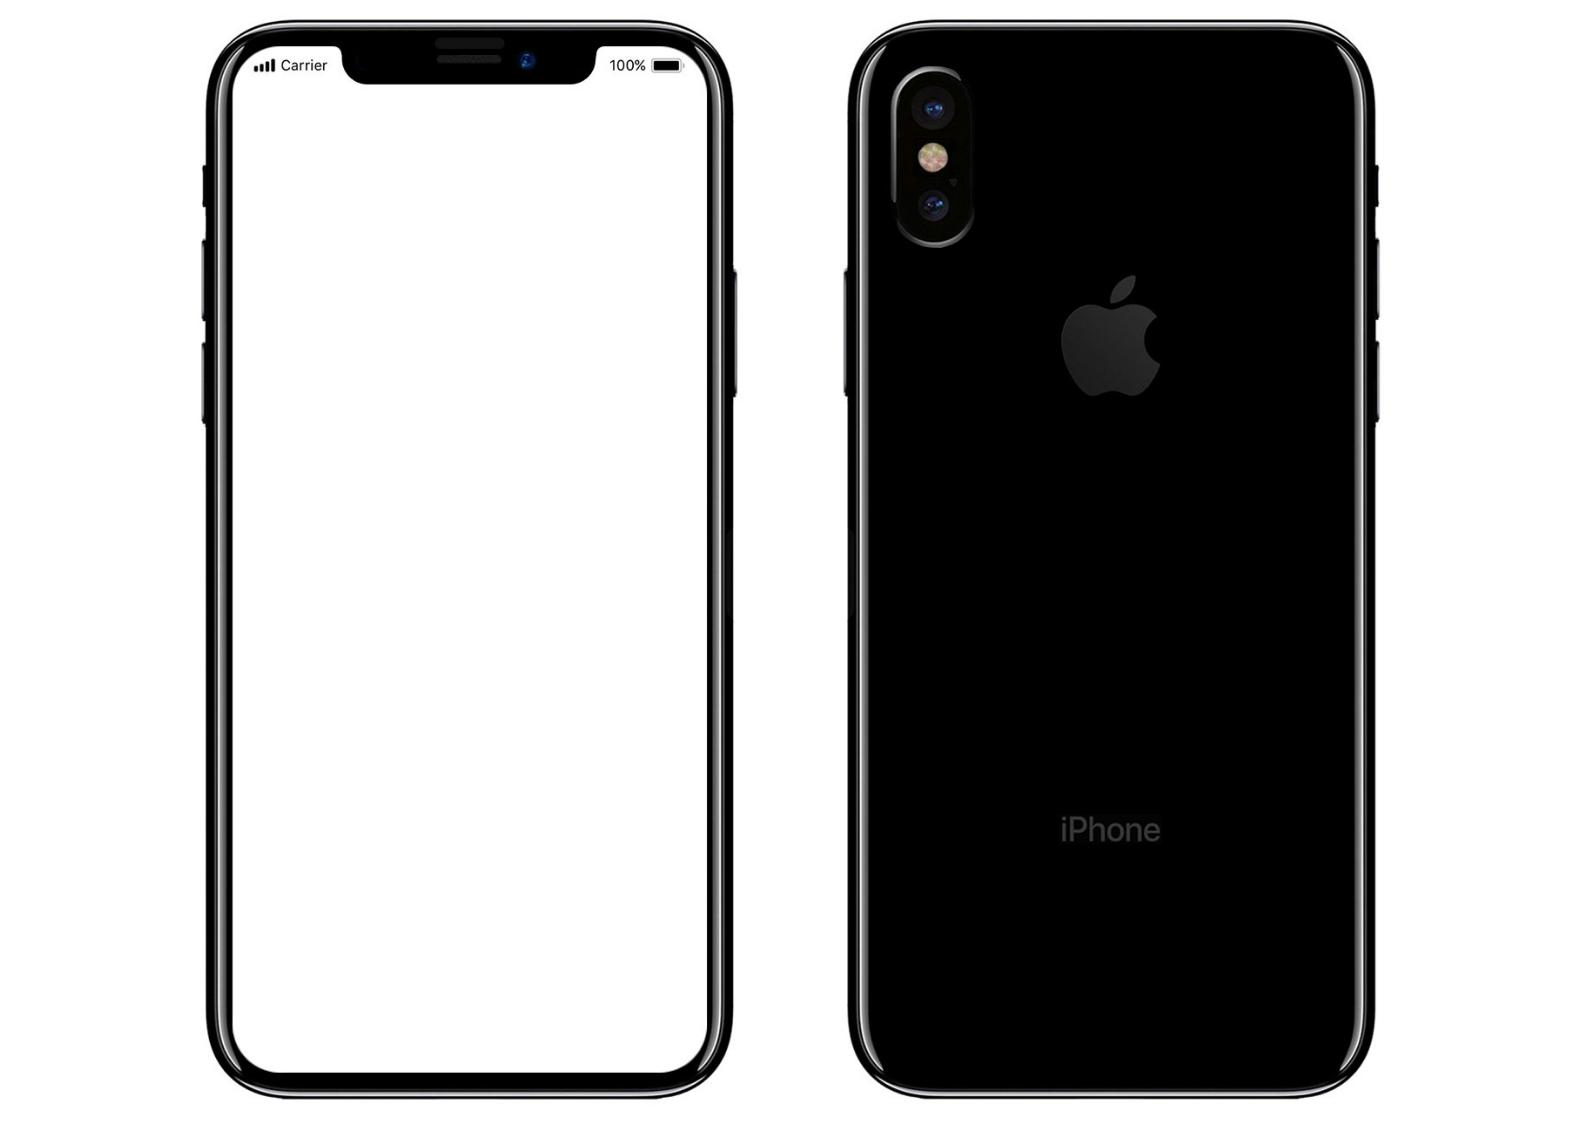 Apple Has Not Yet Confirmed The Date Of Conference Just Over First Generation IPhone 10 Anniversary Estimates That Will Make A Major